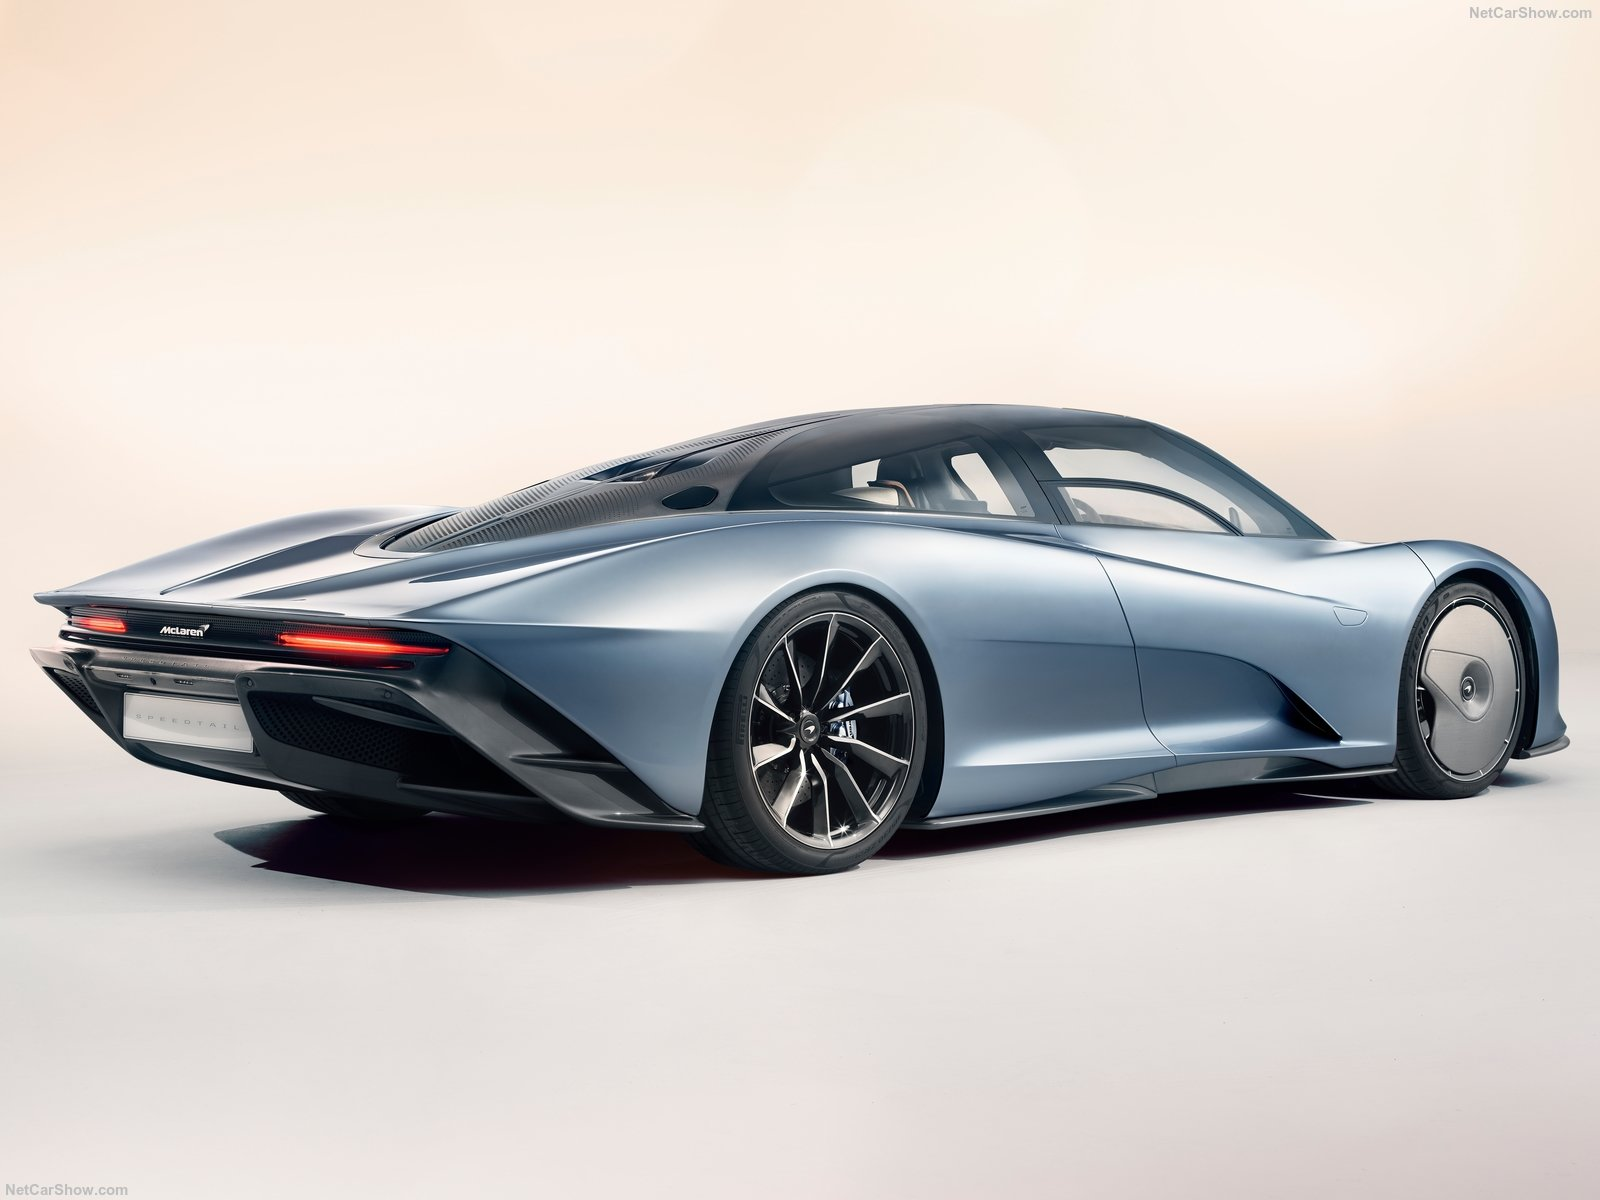 McLaren-Speedtail-2020-1600-04.jpg